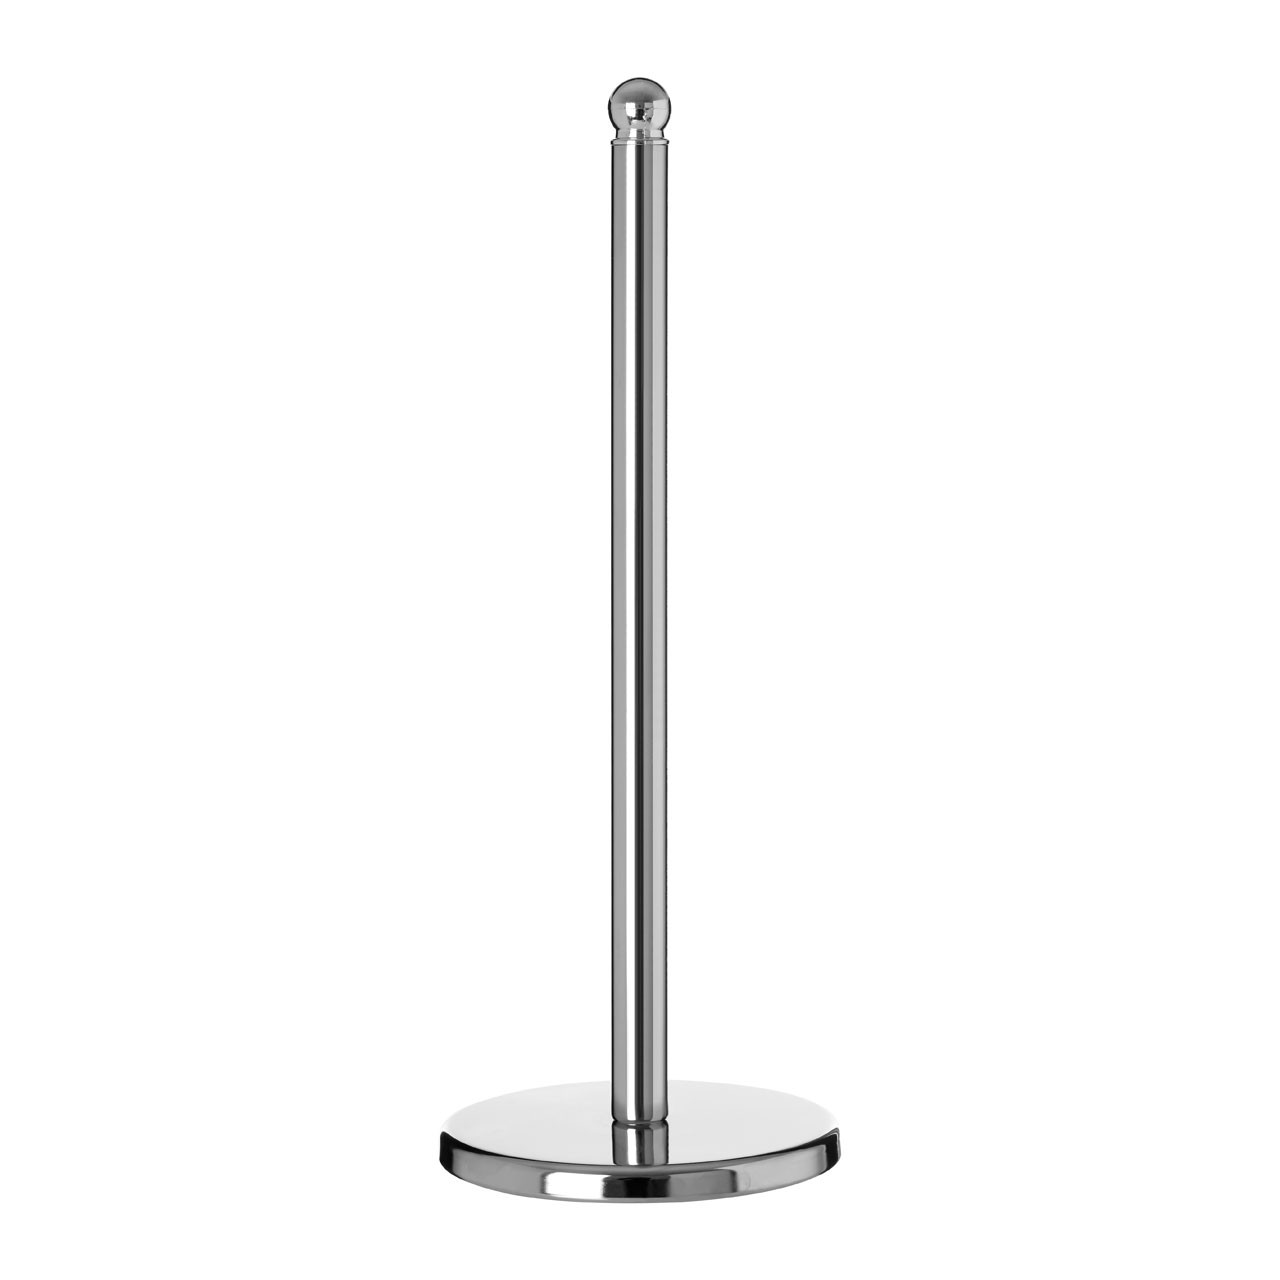 Kitchen Roll Holder - Chrome